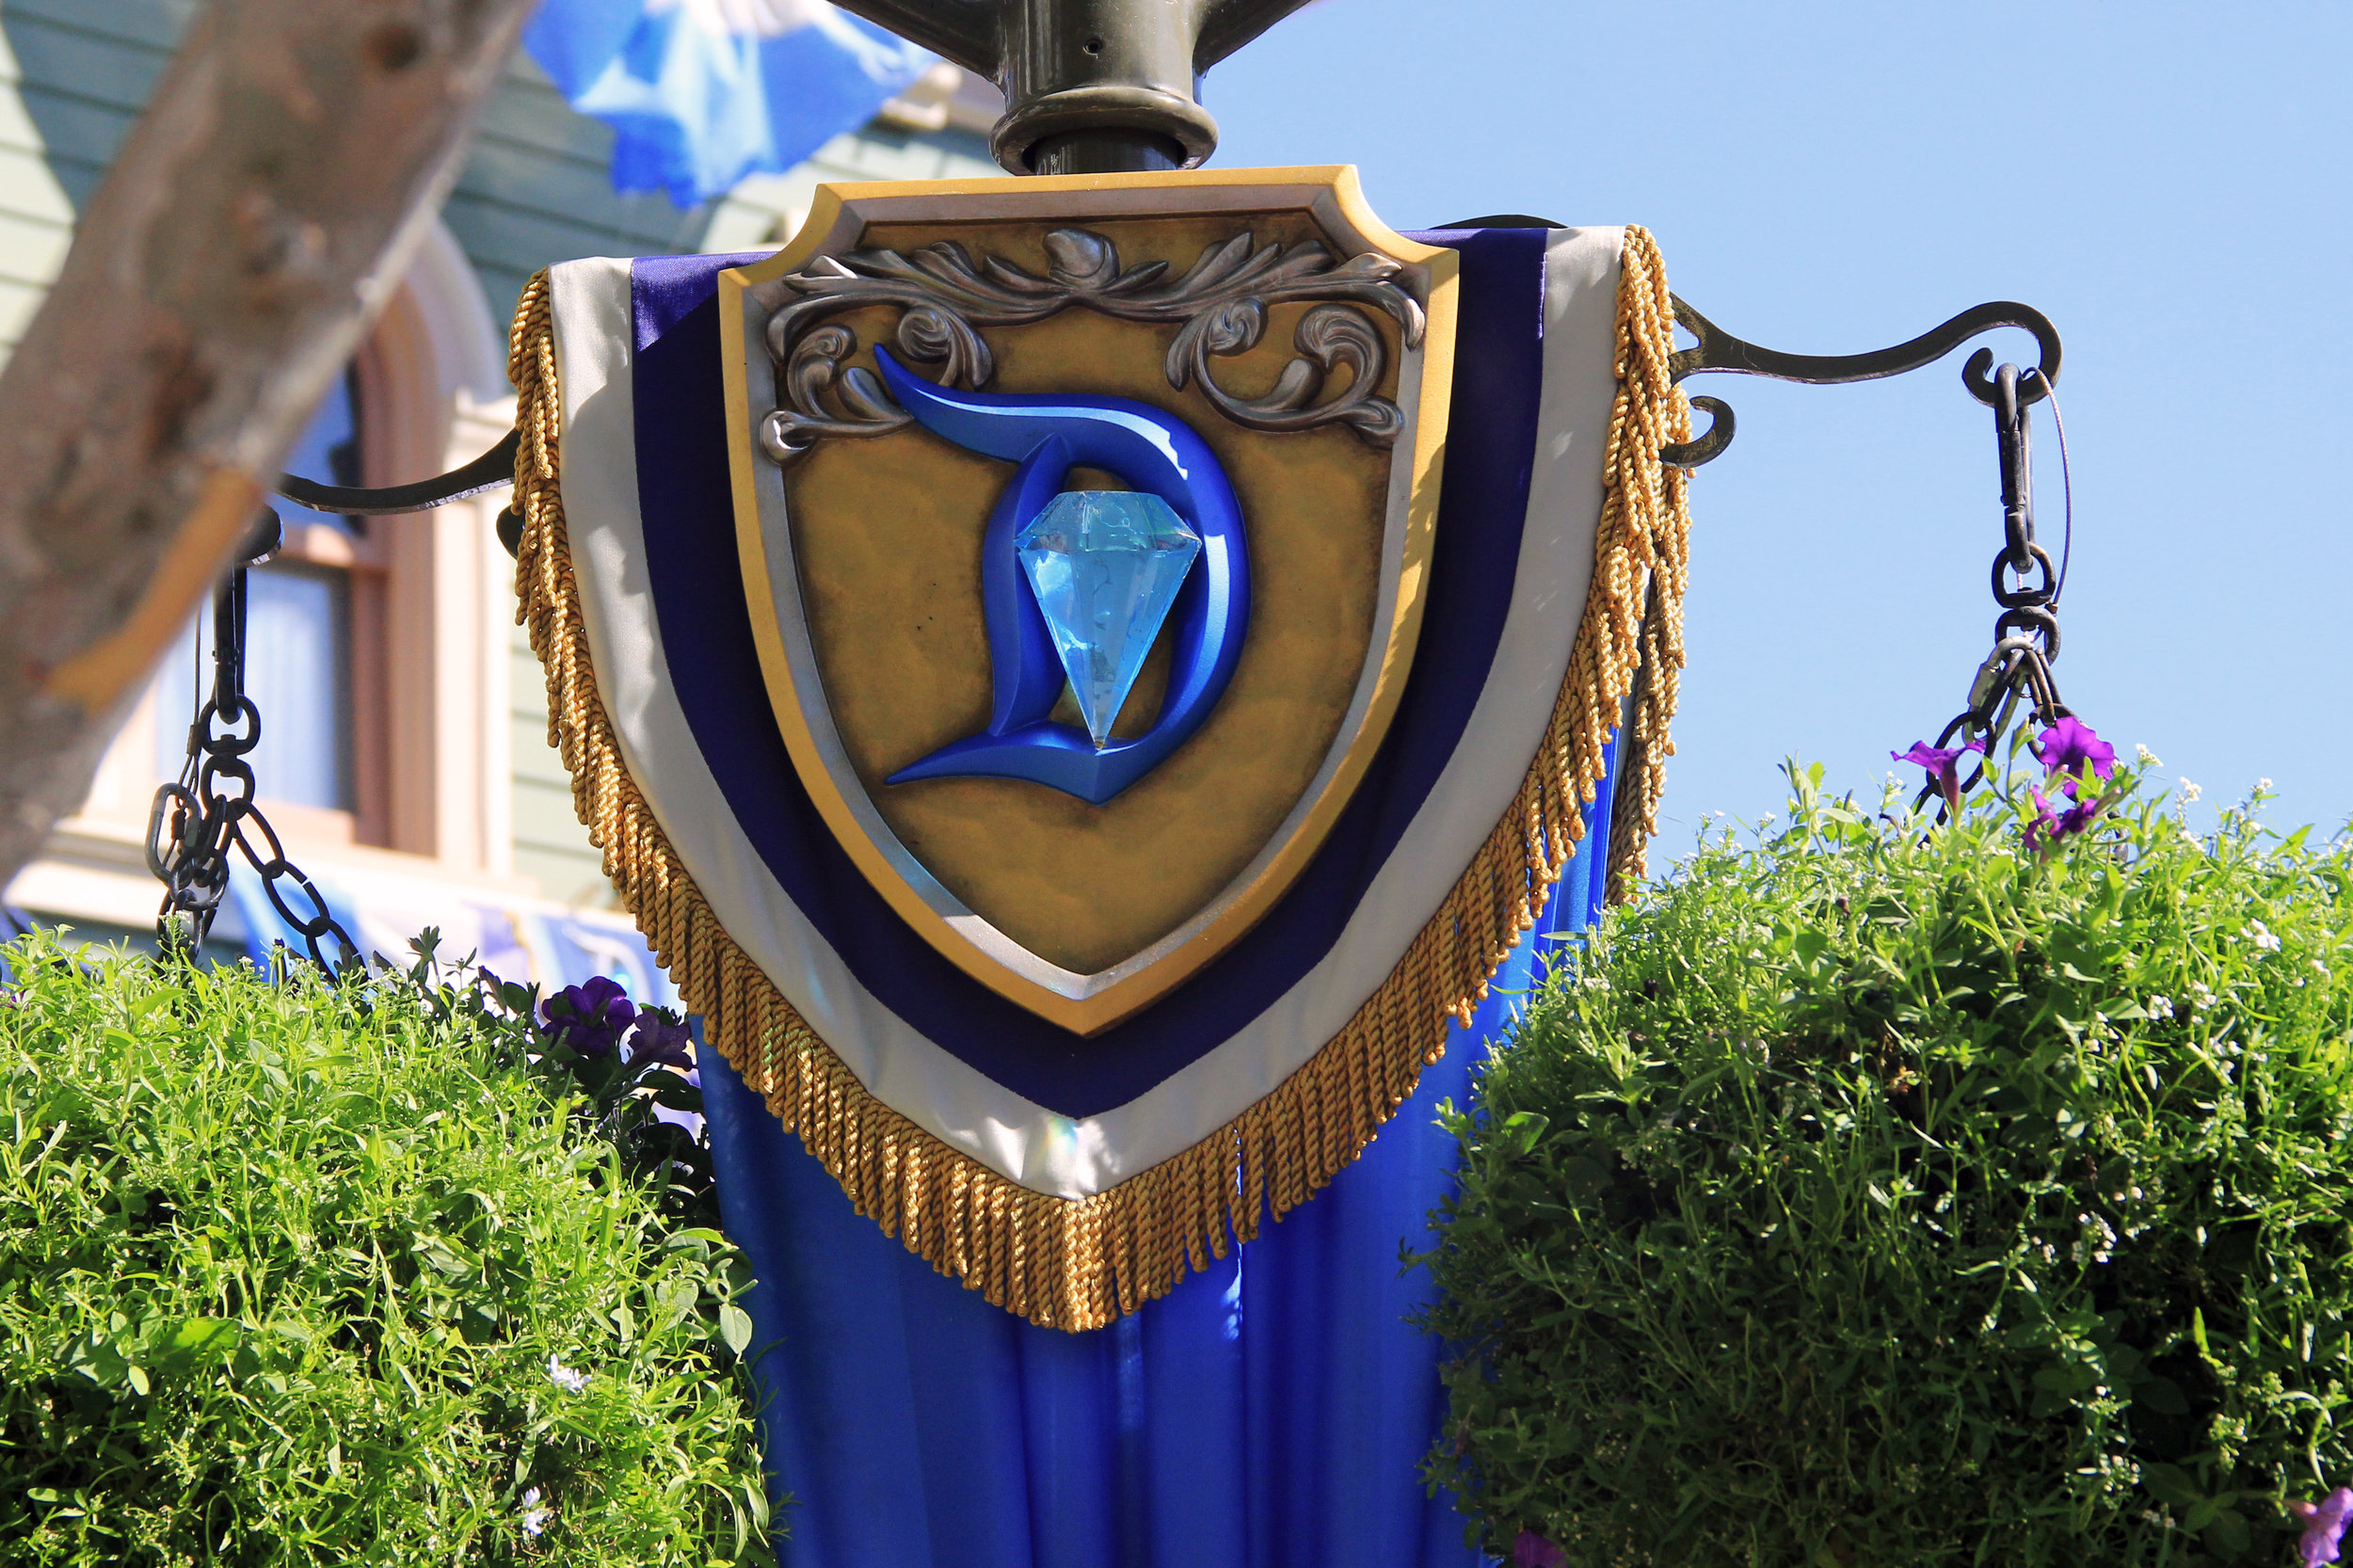 Disneyland celebrates its diamond anniversary